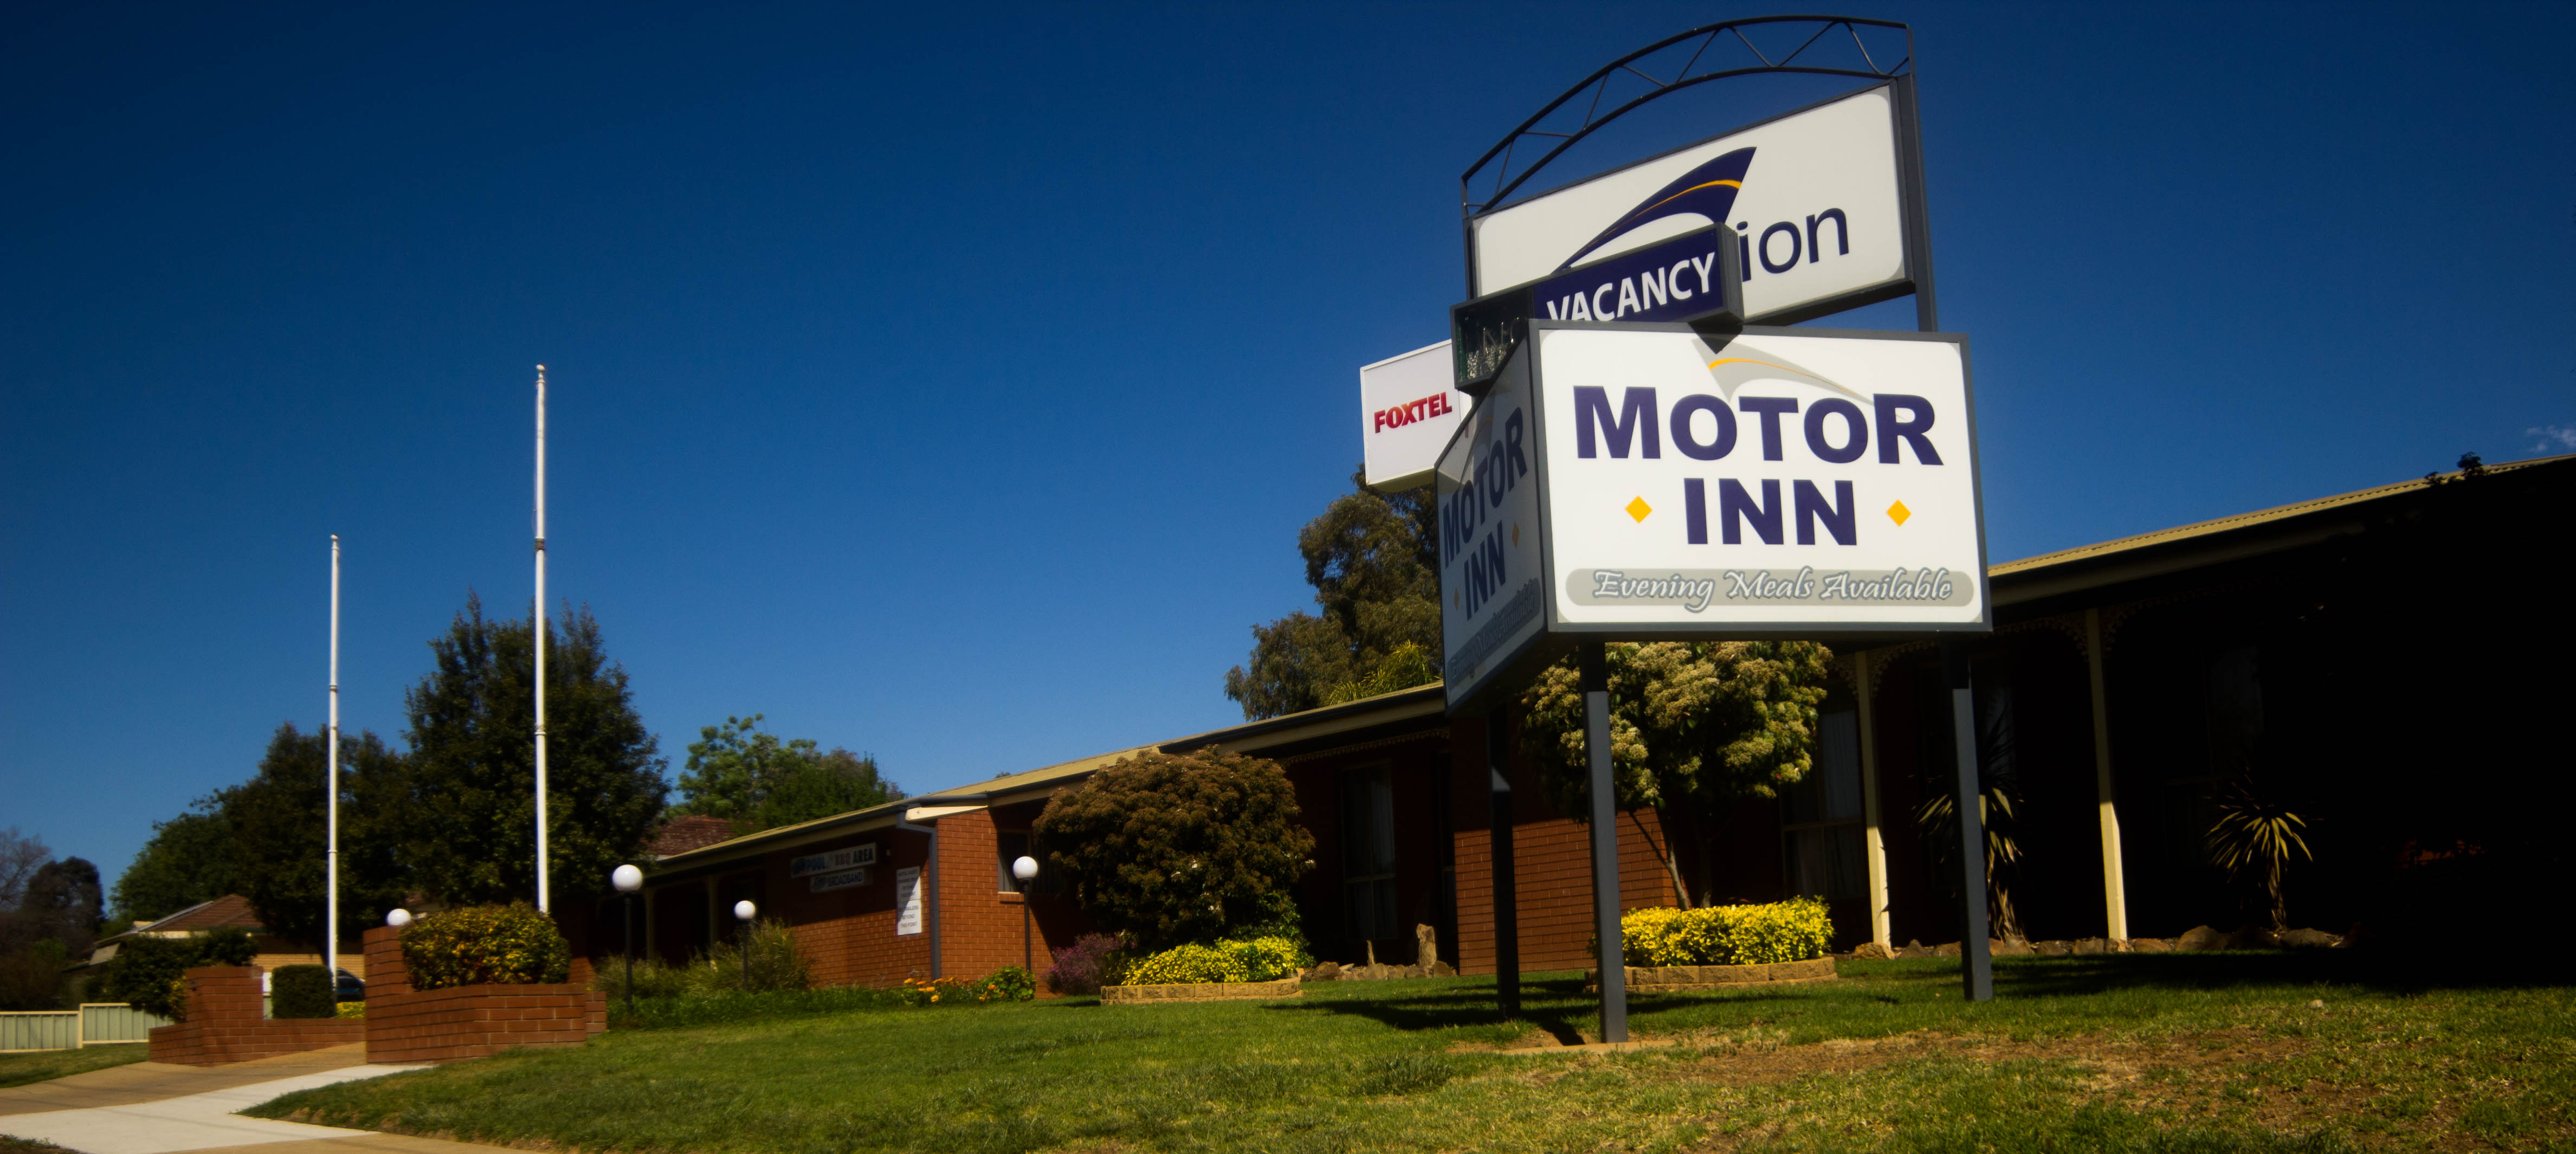 Junction Motor Inn - Sydney Tourism